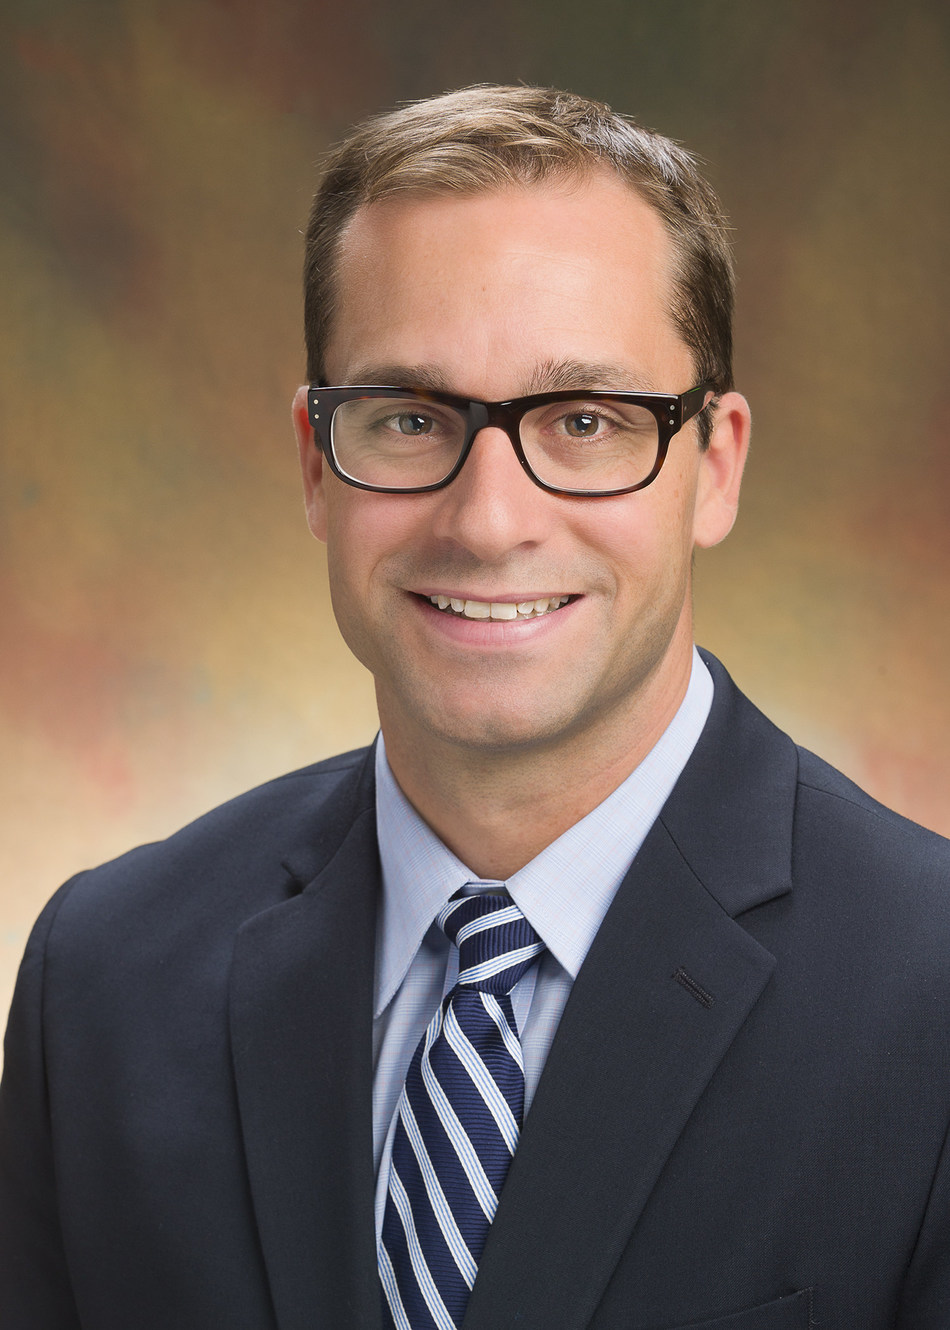 William H. Peranteau, MD, a pediatric and fetal surgeon in CHOP's Center for Fetal Diagnosis and Treatment